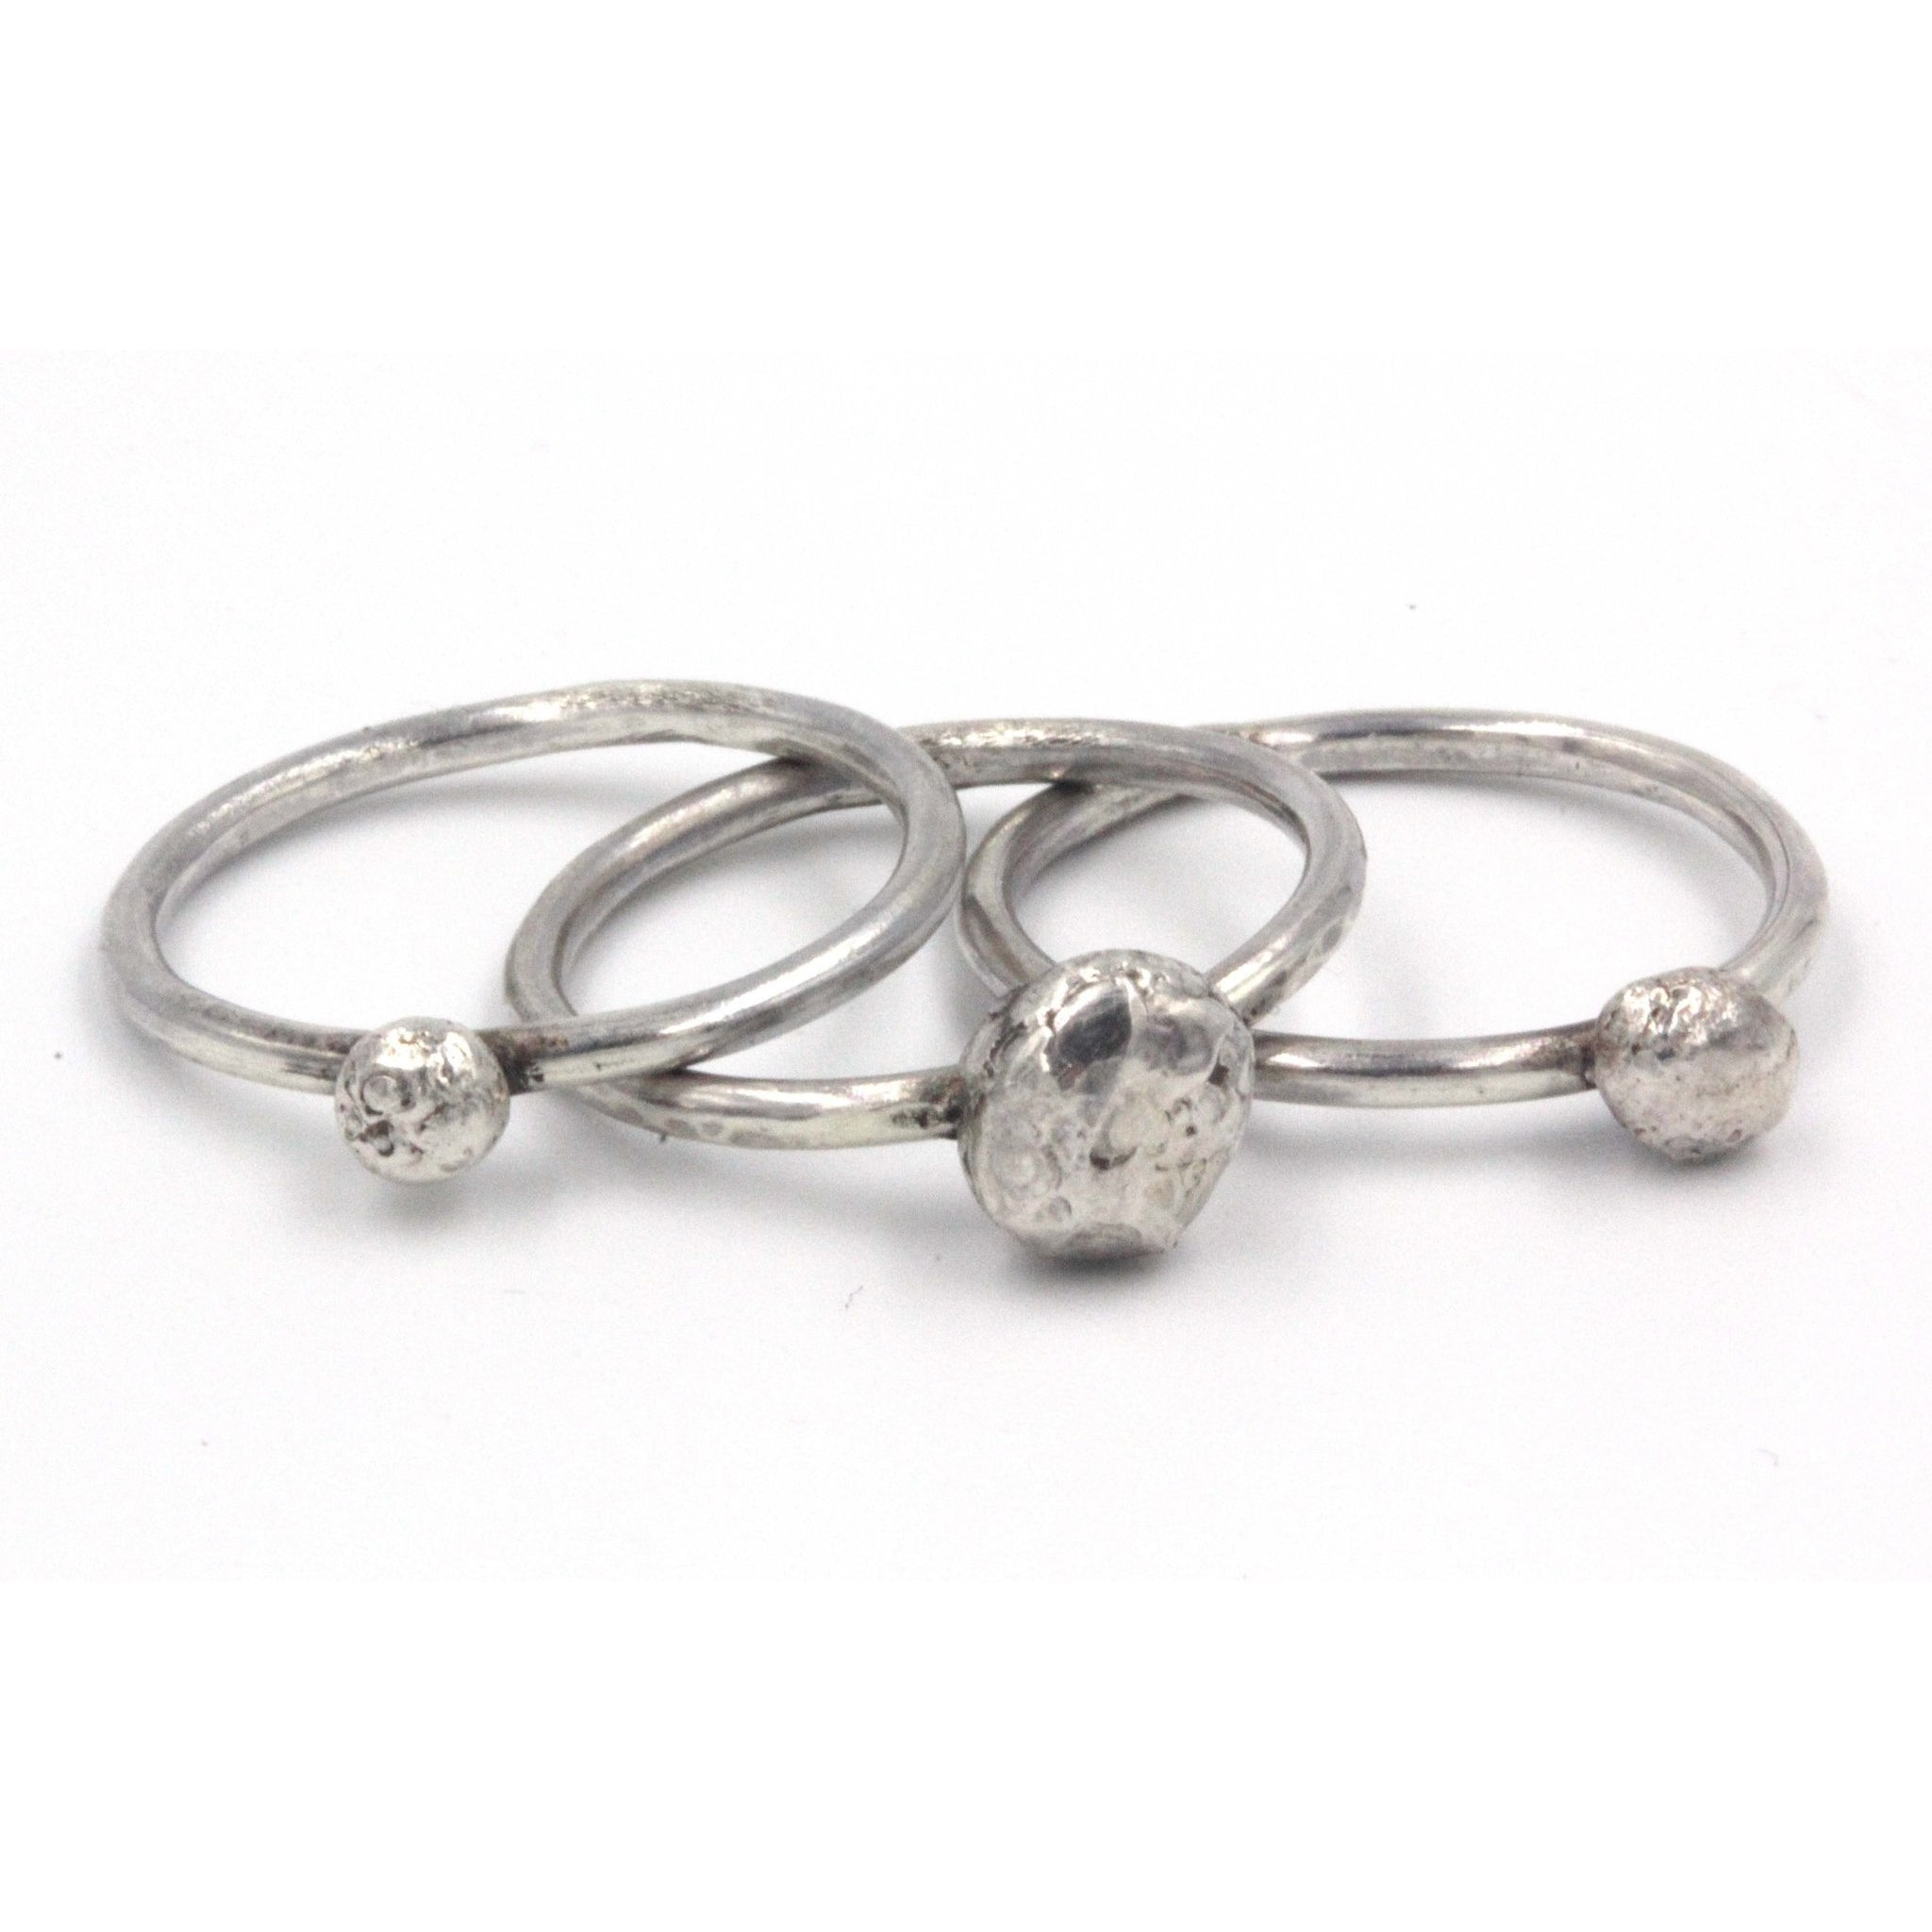 Pebbles Stacking rings, handmade in sterling silver by Gemma Tremayne Jewellery